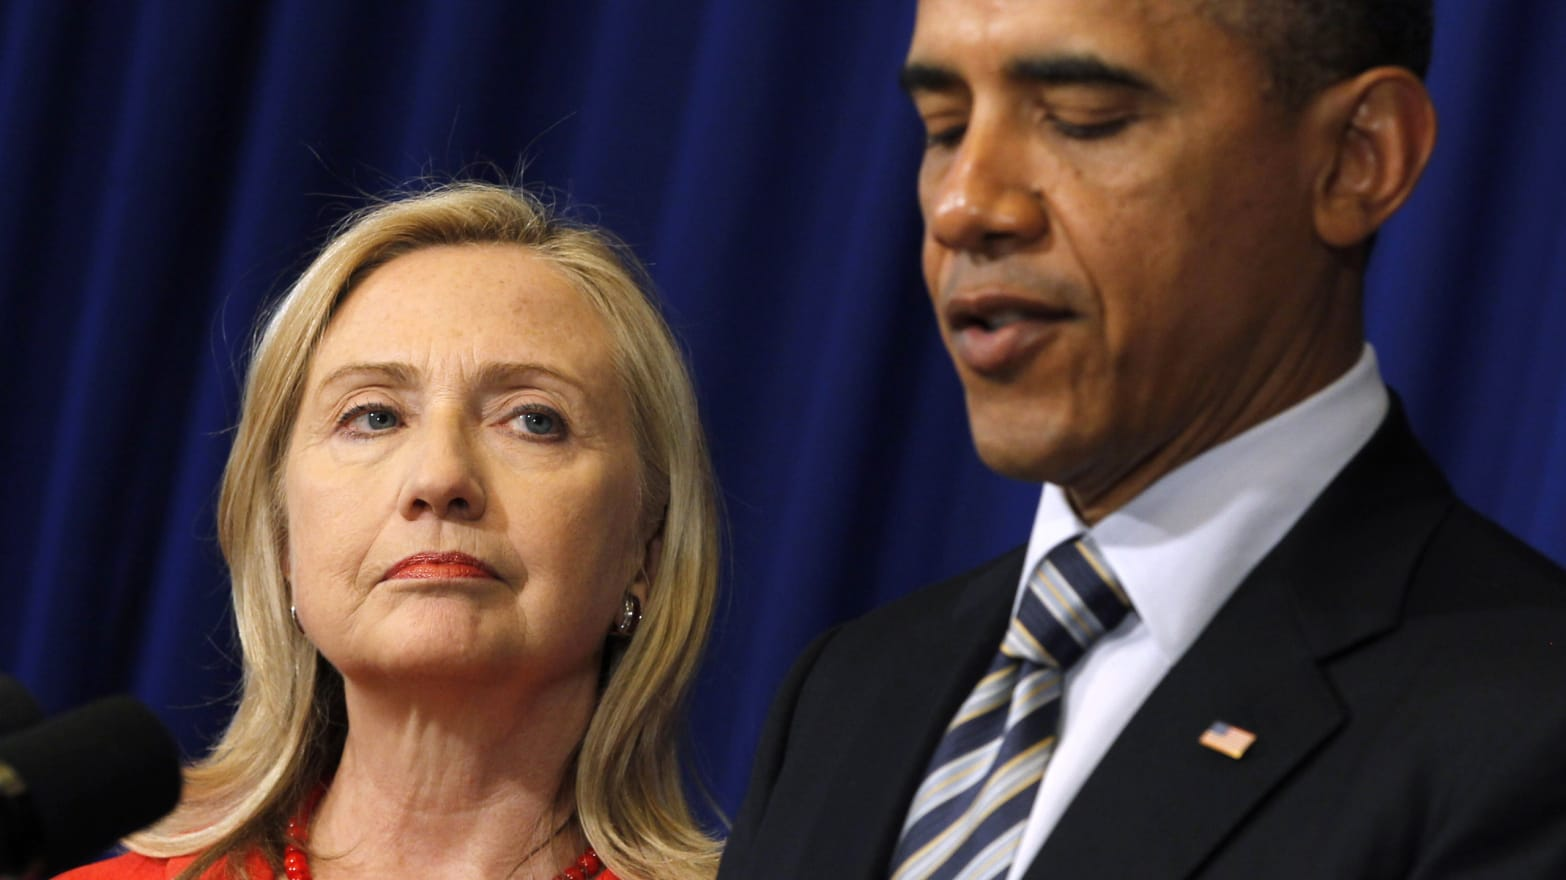 Hillary Clinton Pushed Obama to Keep Troops in Iraq